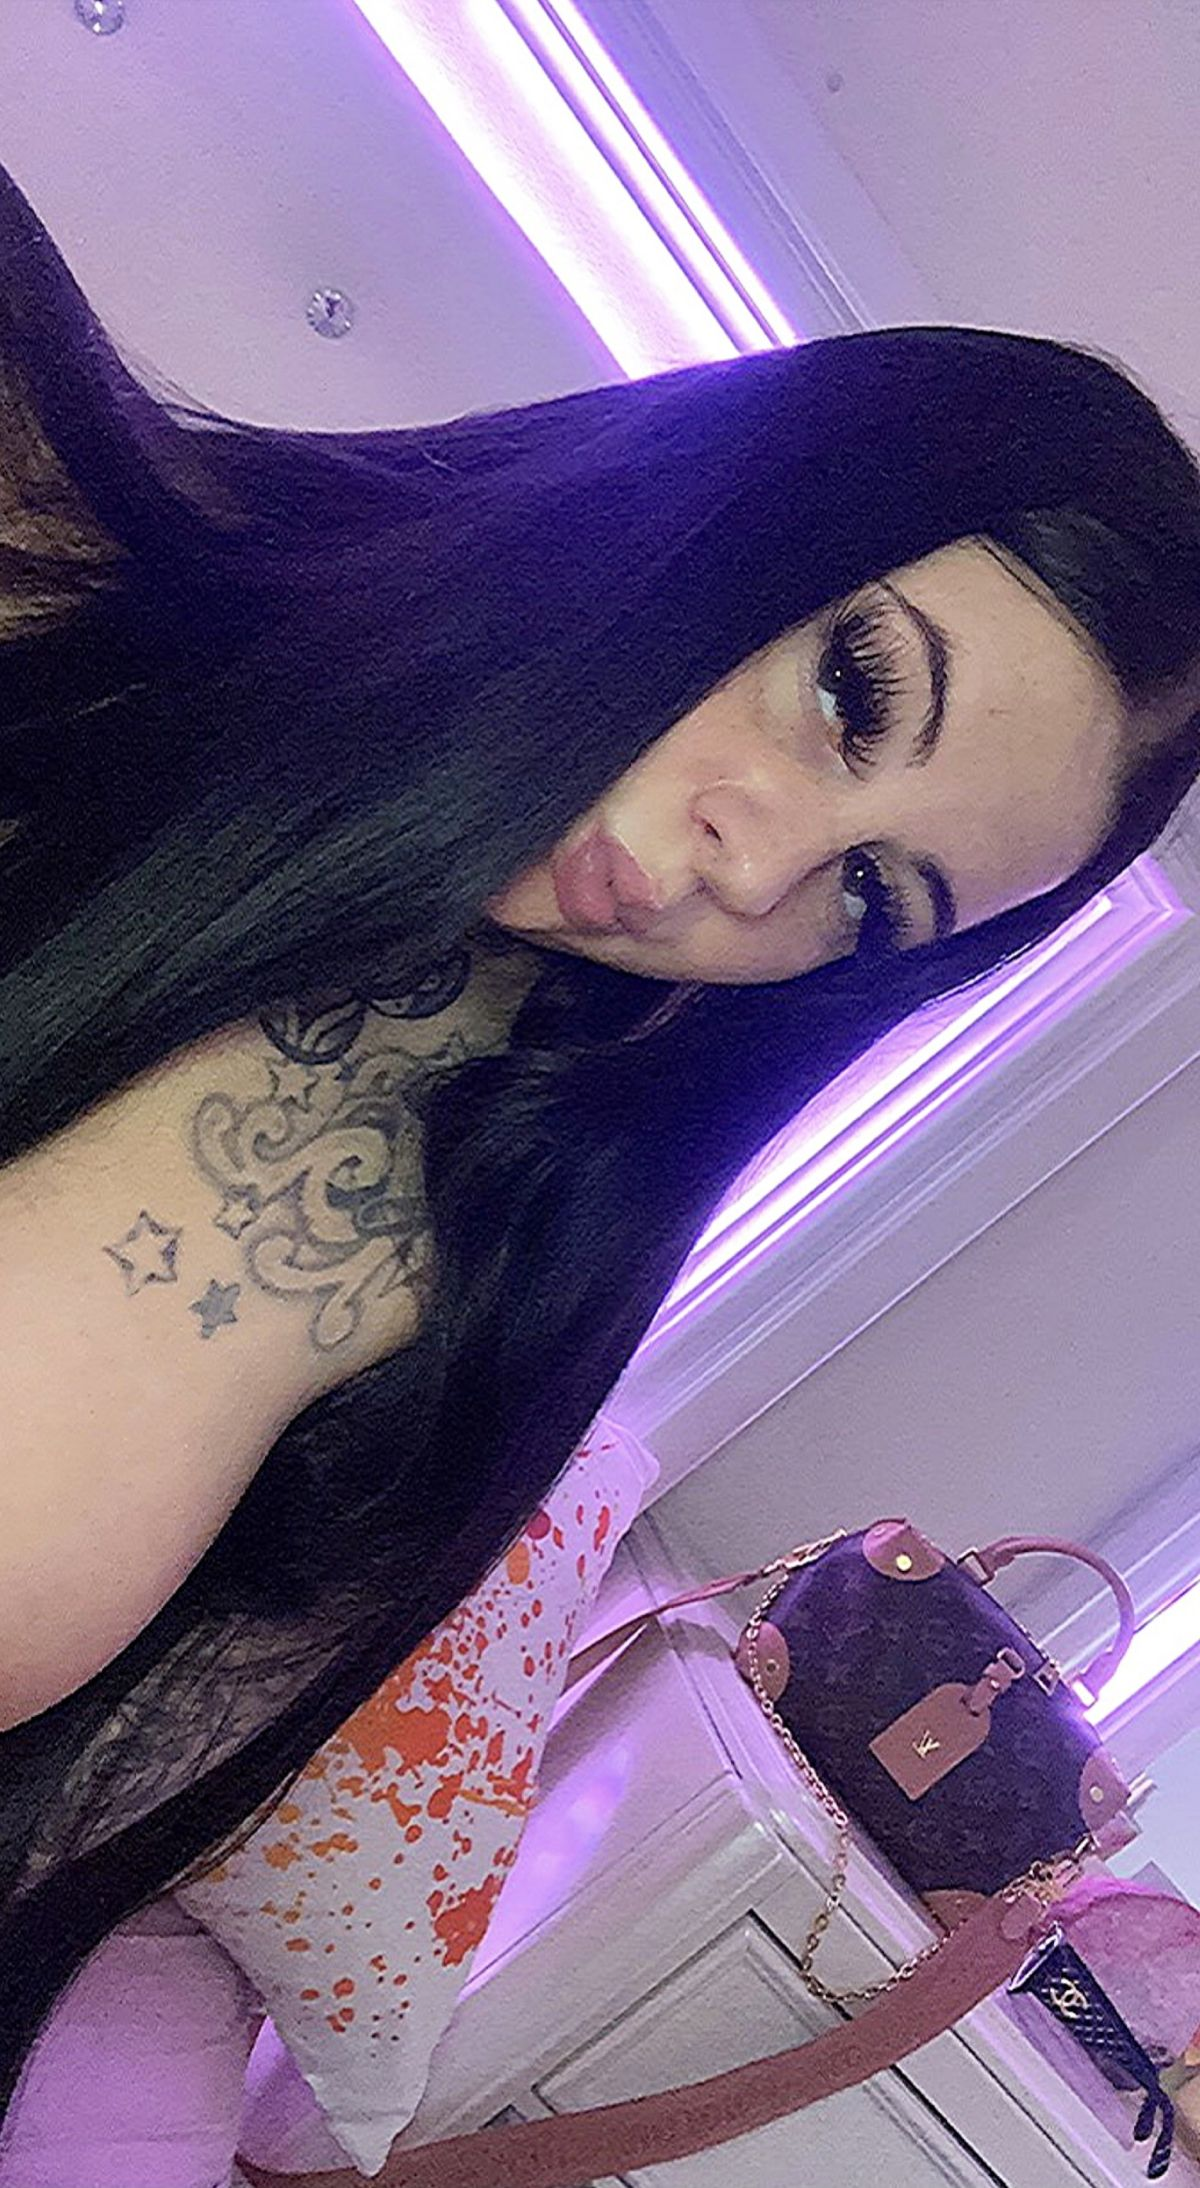 Download Thatbunnygetmoney onlyfans leaks onlyfans leaked